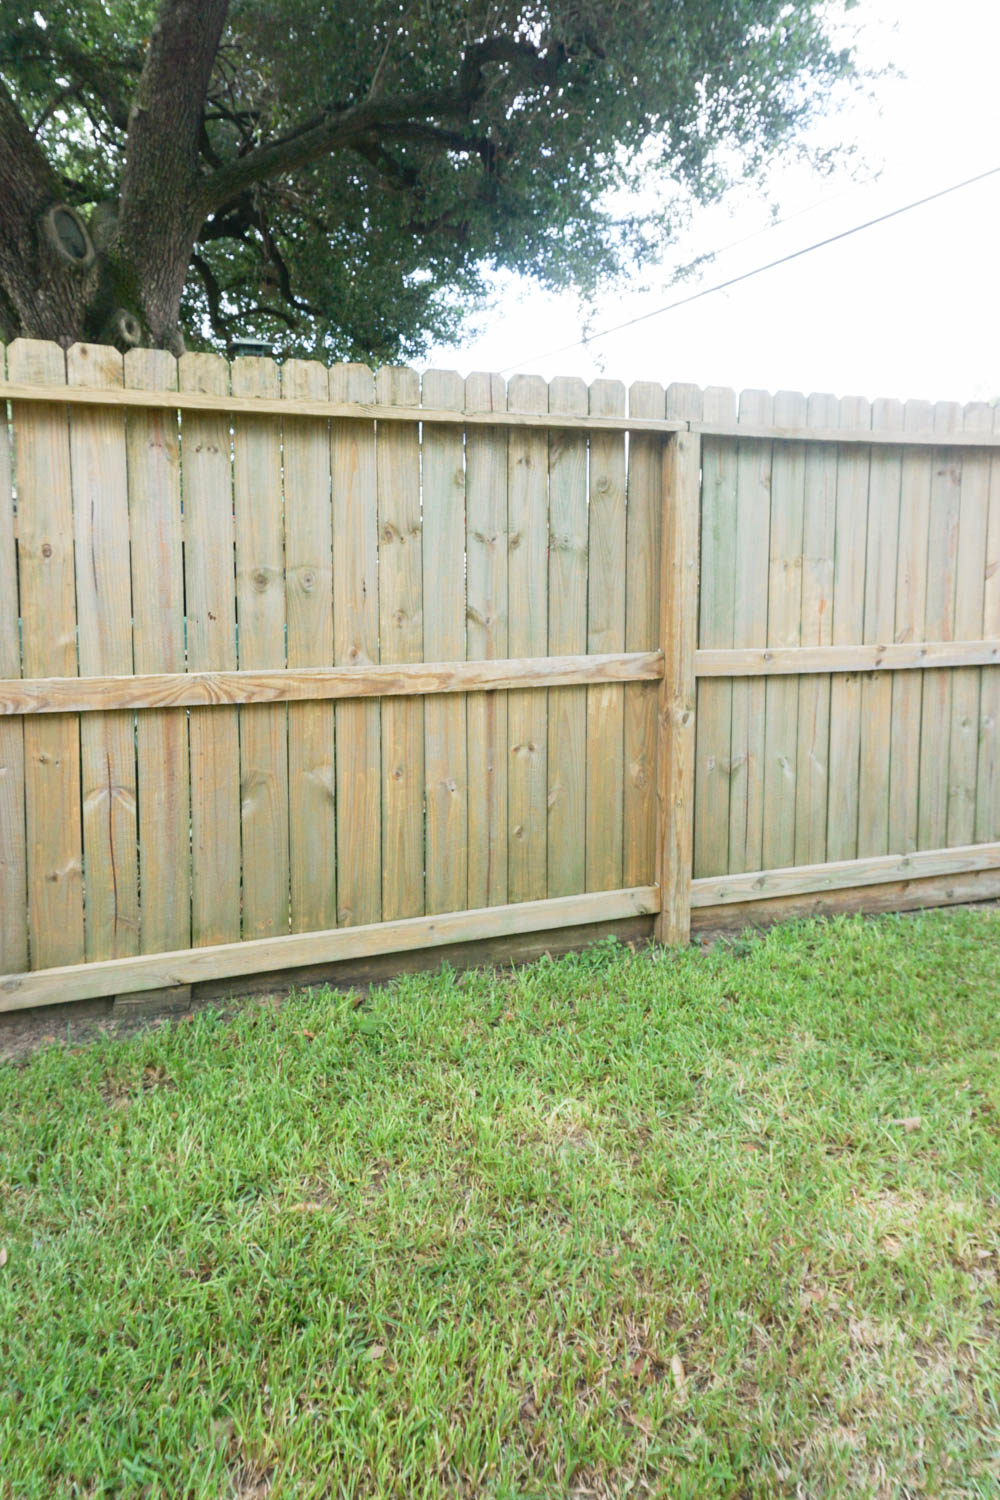 How to clean wood fence - with the WORX hydroshot